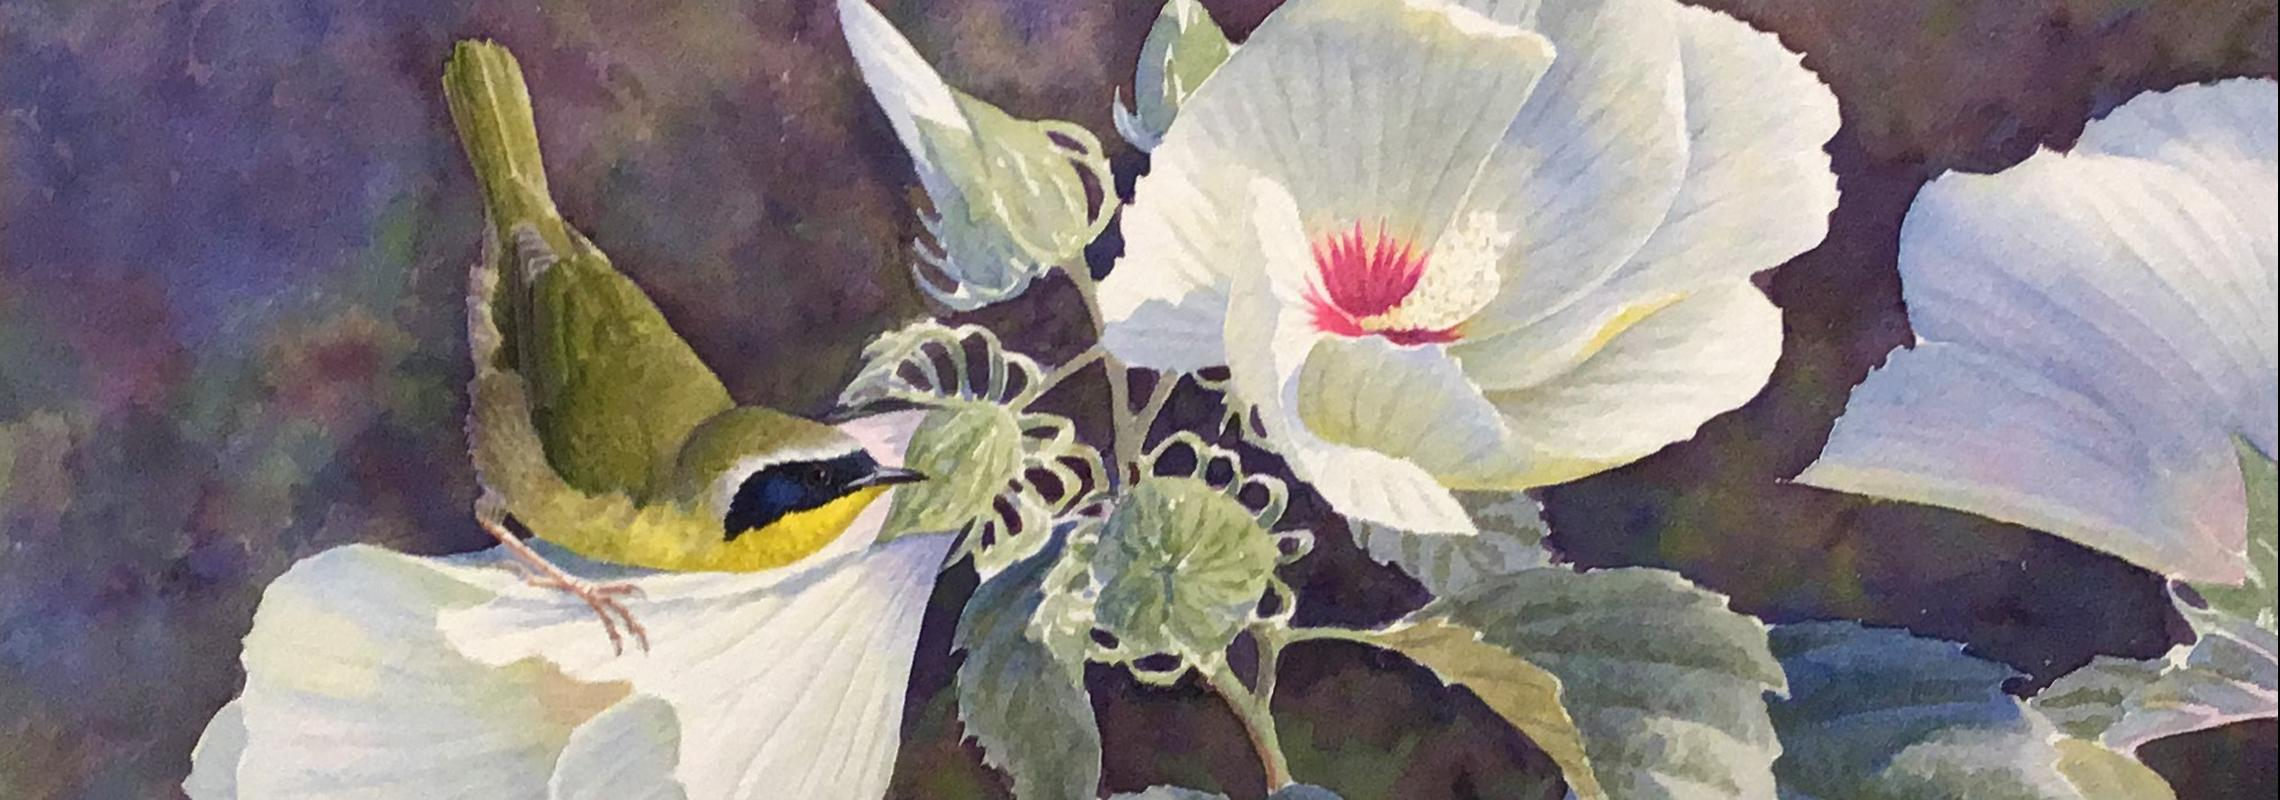 Common Yellowthroat by David Plank